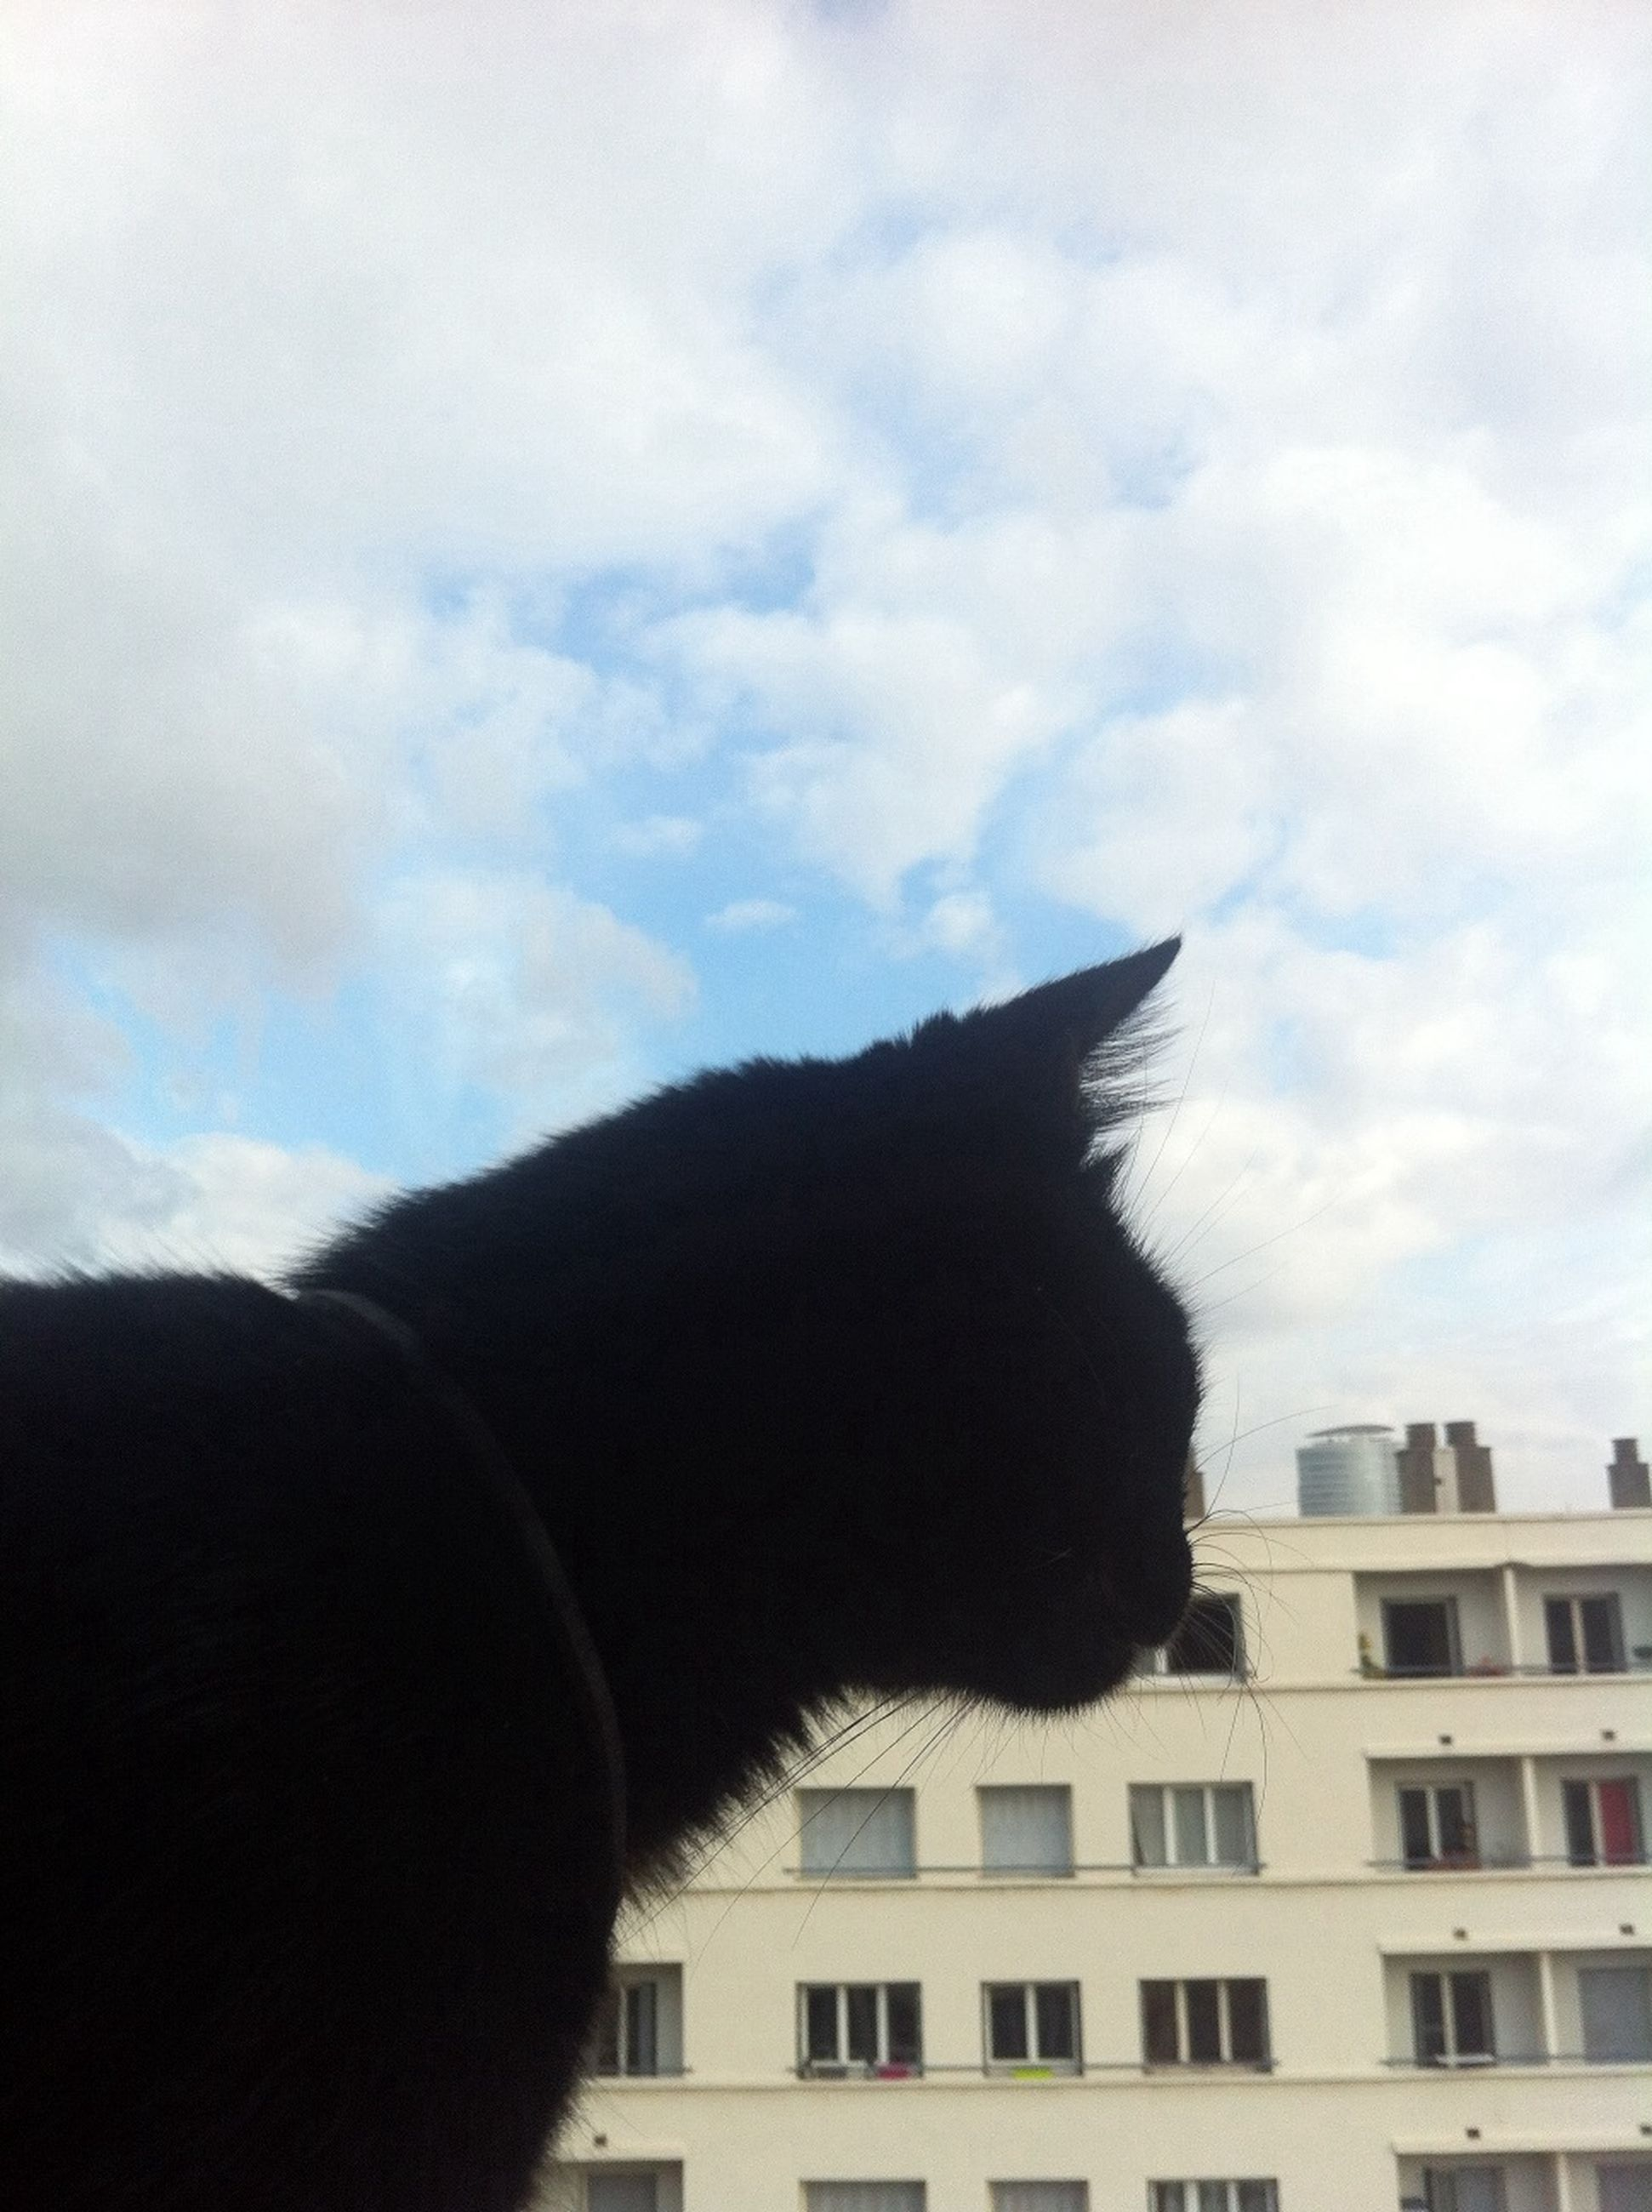 sky, one animal, animal themes, architecture, built structure, low angle view, building exterior, cloud - sky, domestic animals, pets, window, mammal, cloud, domestic cat, cloudy, building, no people, outdoors, silhouette, cat